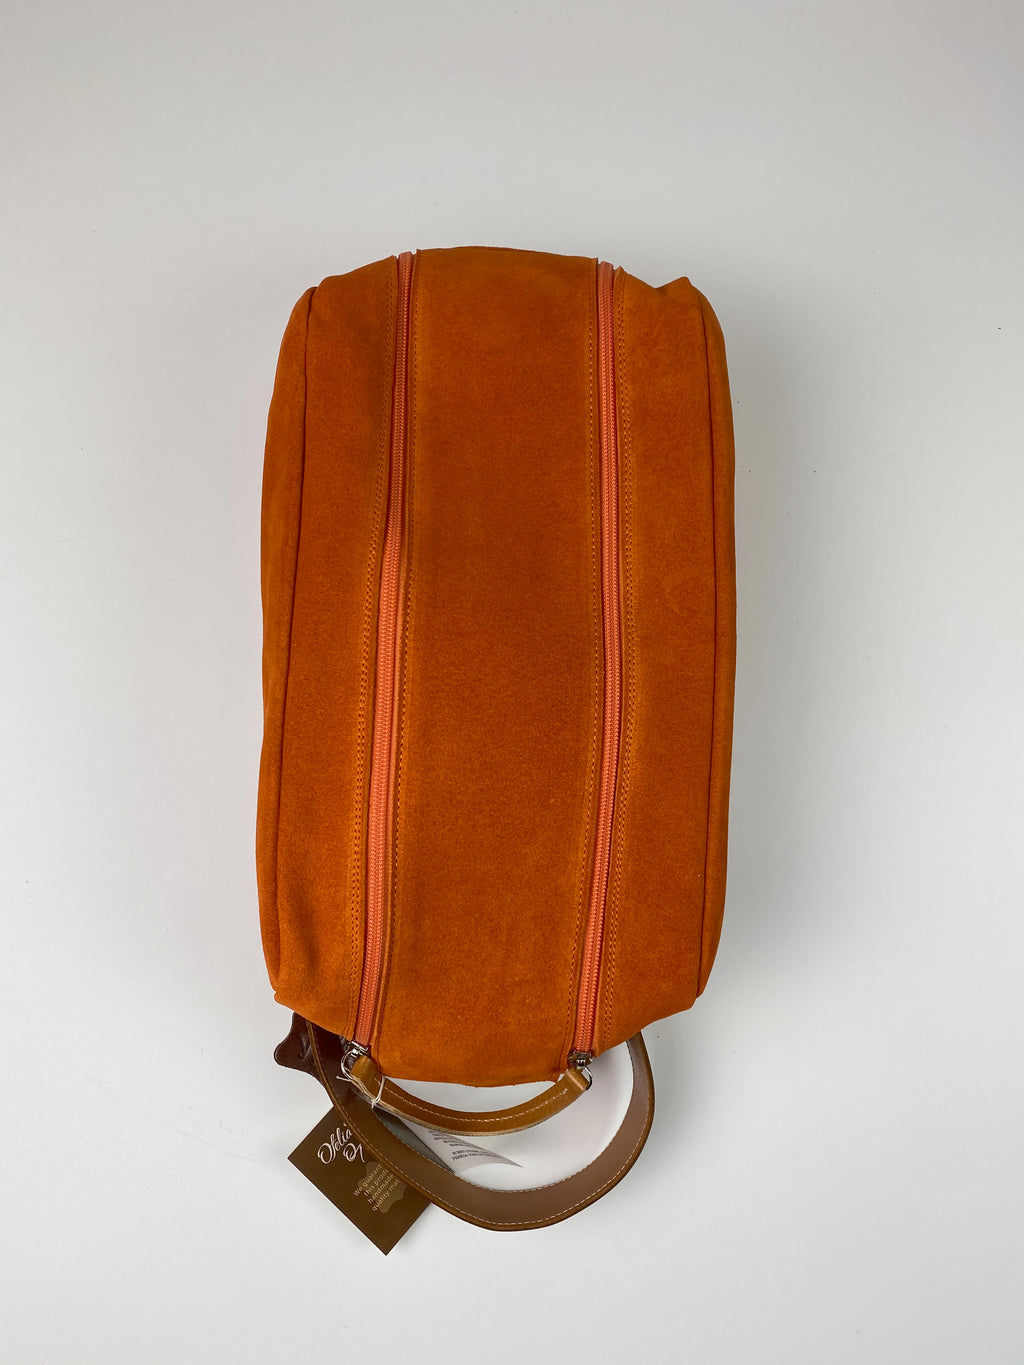 Barcelona Suede Shoe Bag - Peanuts and Golf in Orange